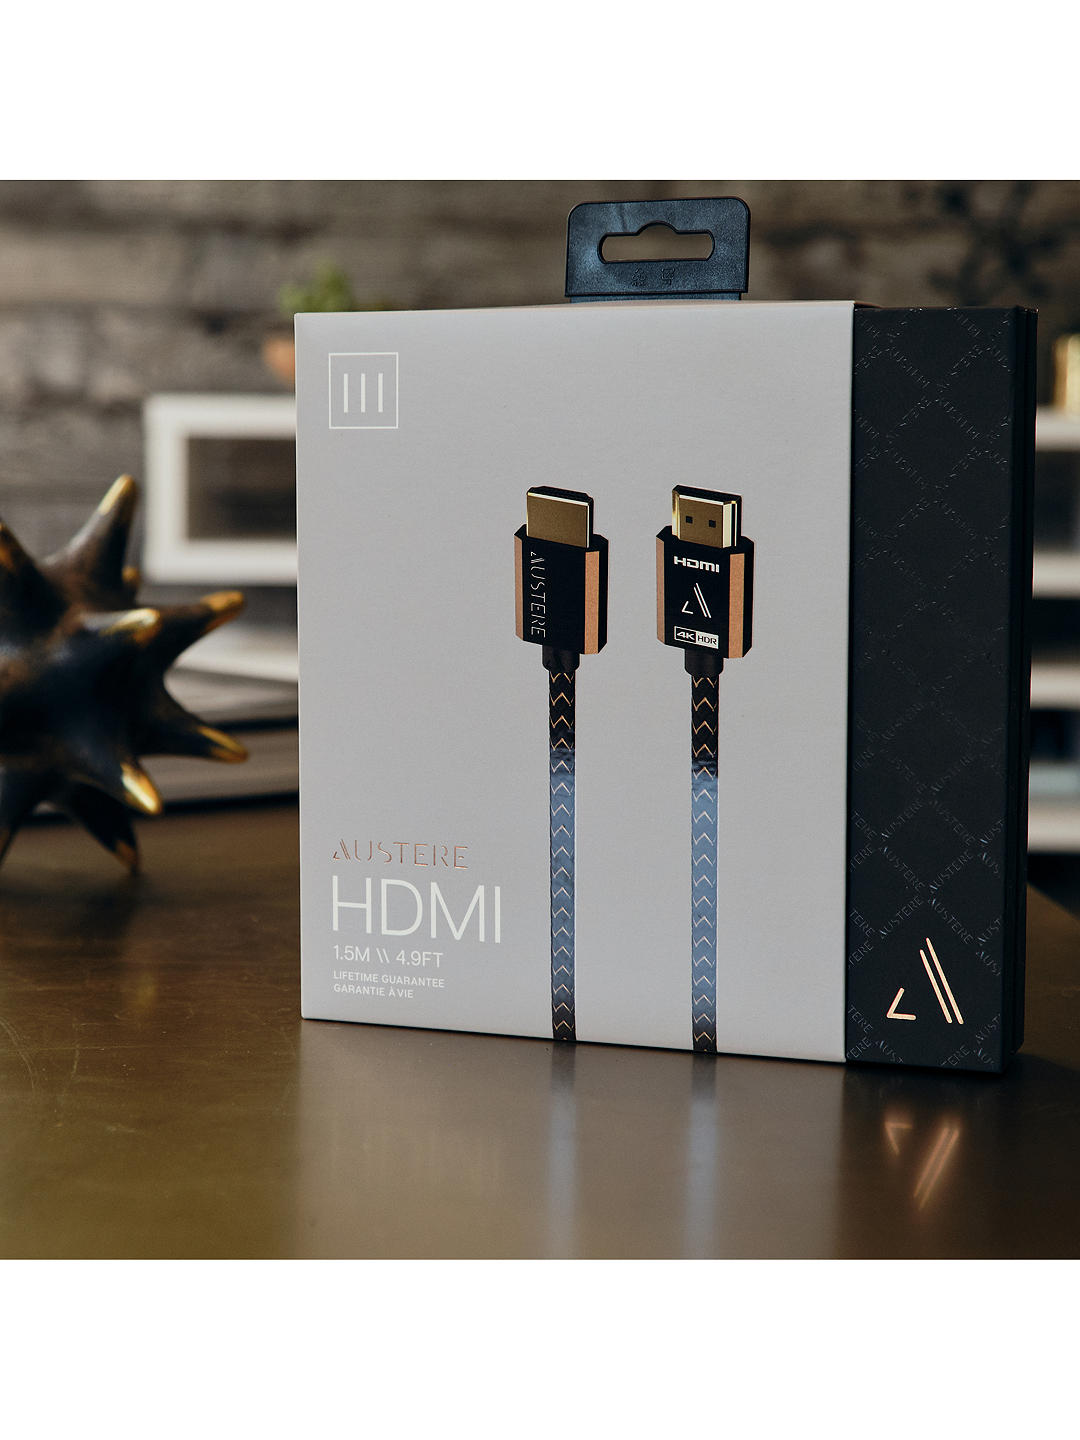 Austere III (3) Series 4K 1.5m HDMI Cable